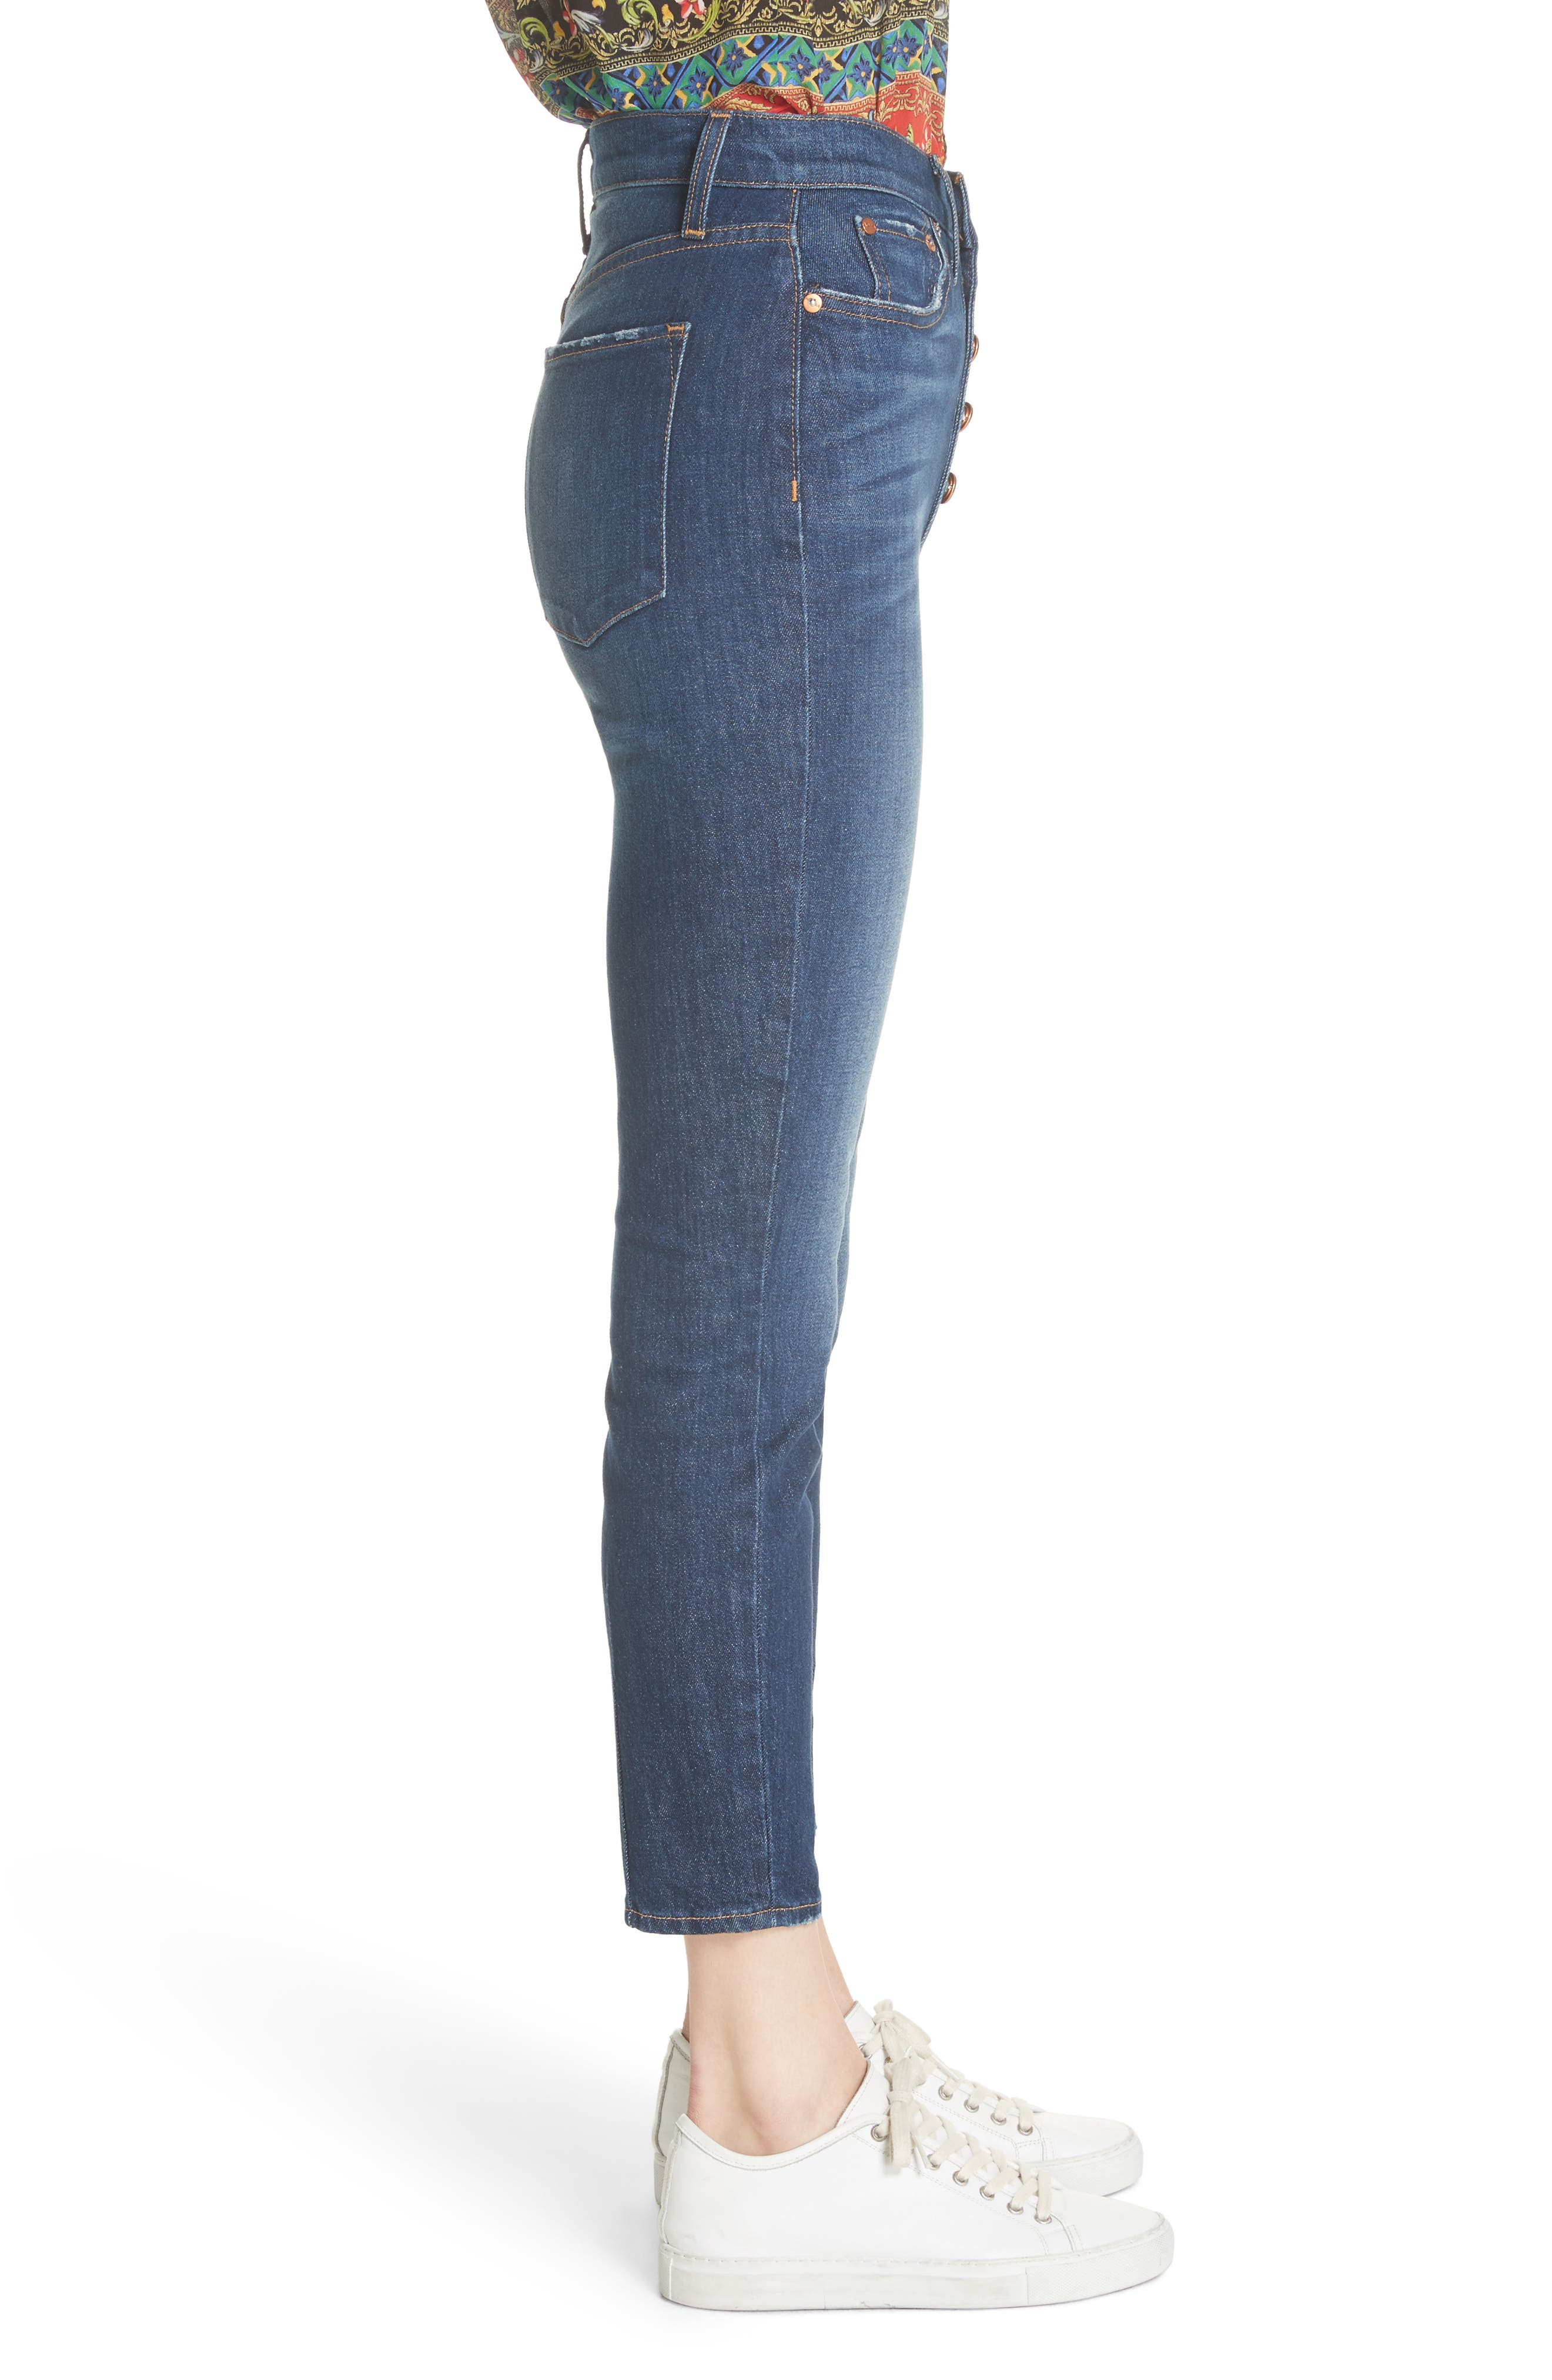 AO.LA Good High Waist Exposed Button Skinny Jeans,                             Alternate thumbnail 3, color,                             Good Times